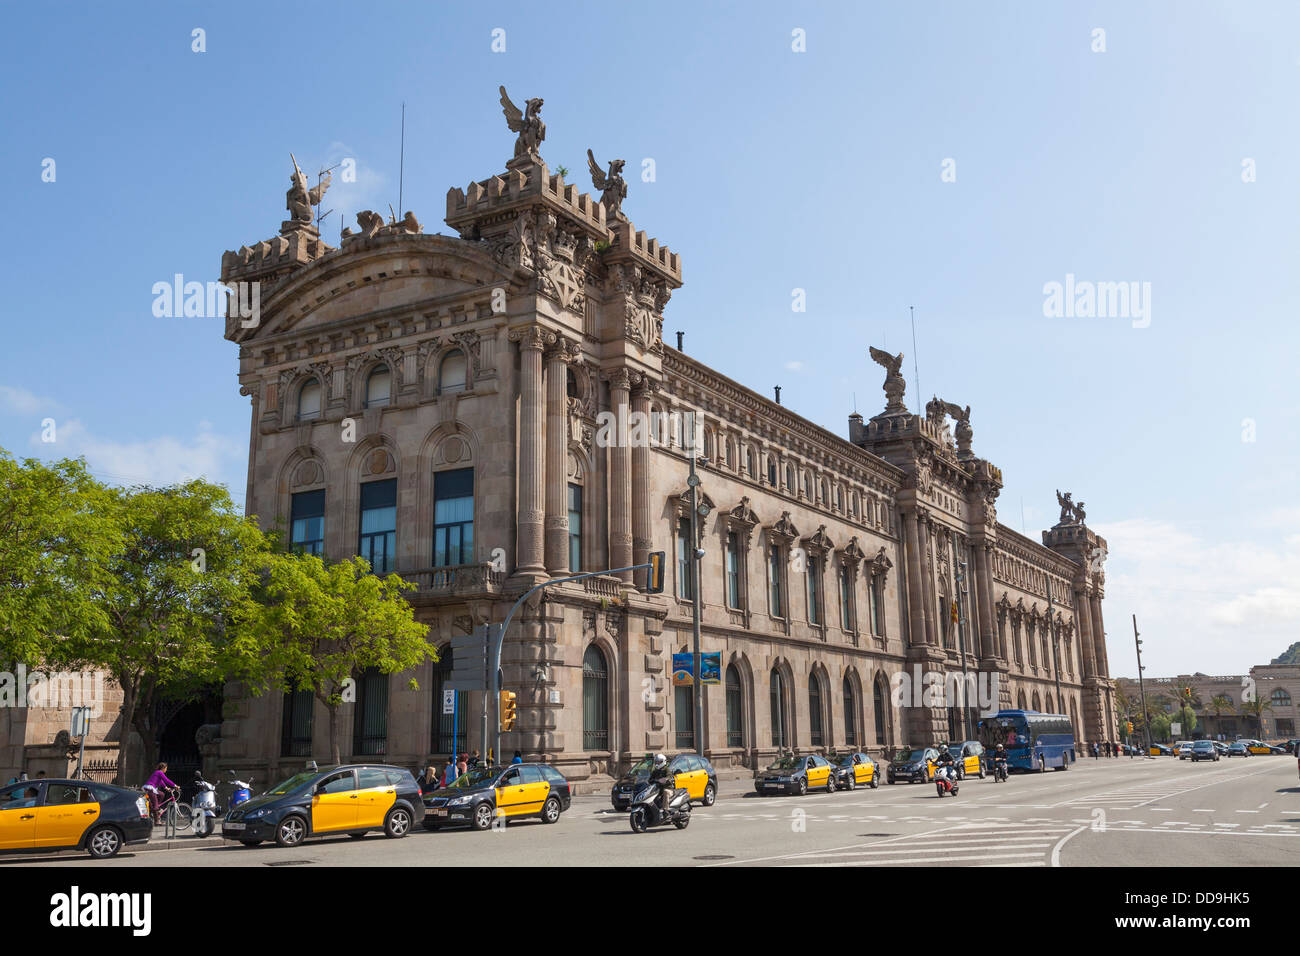 The Old Customs Building Aduana in Barcelona. - Stock Image